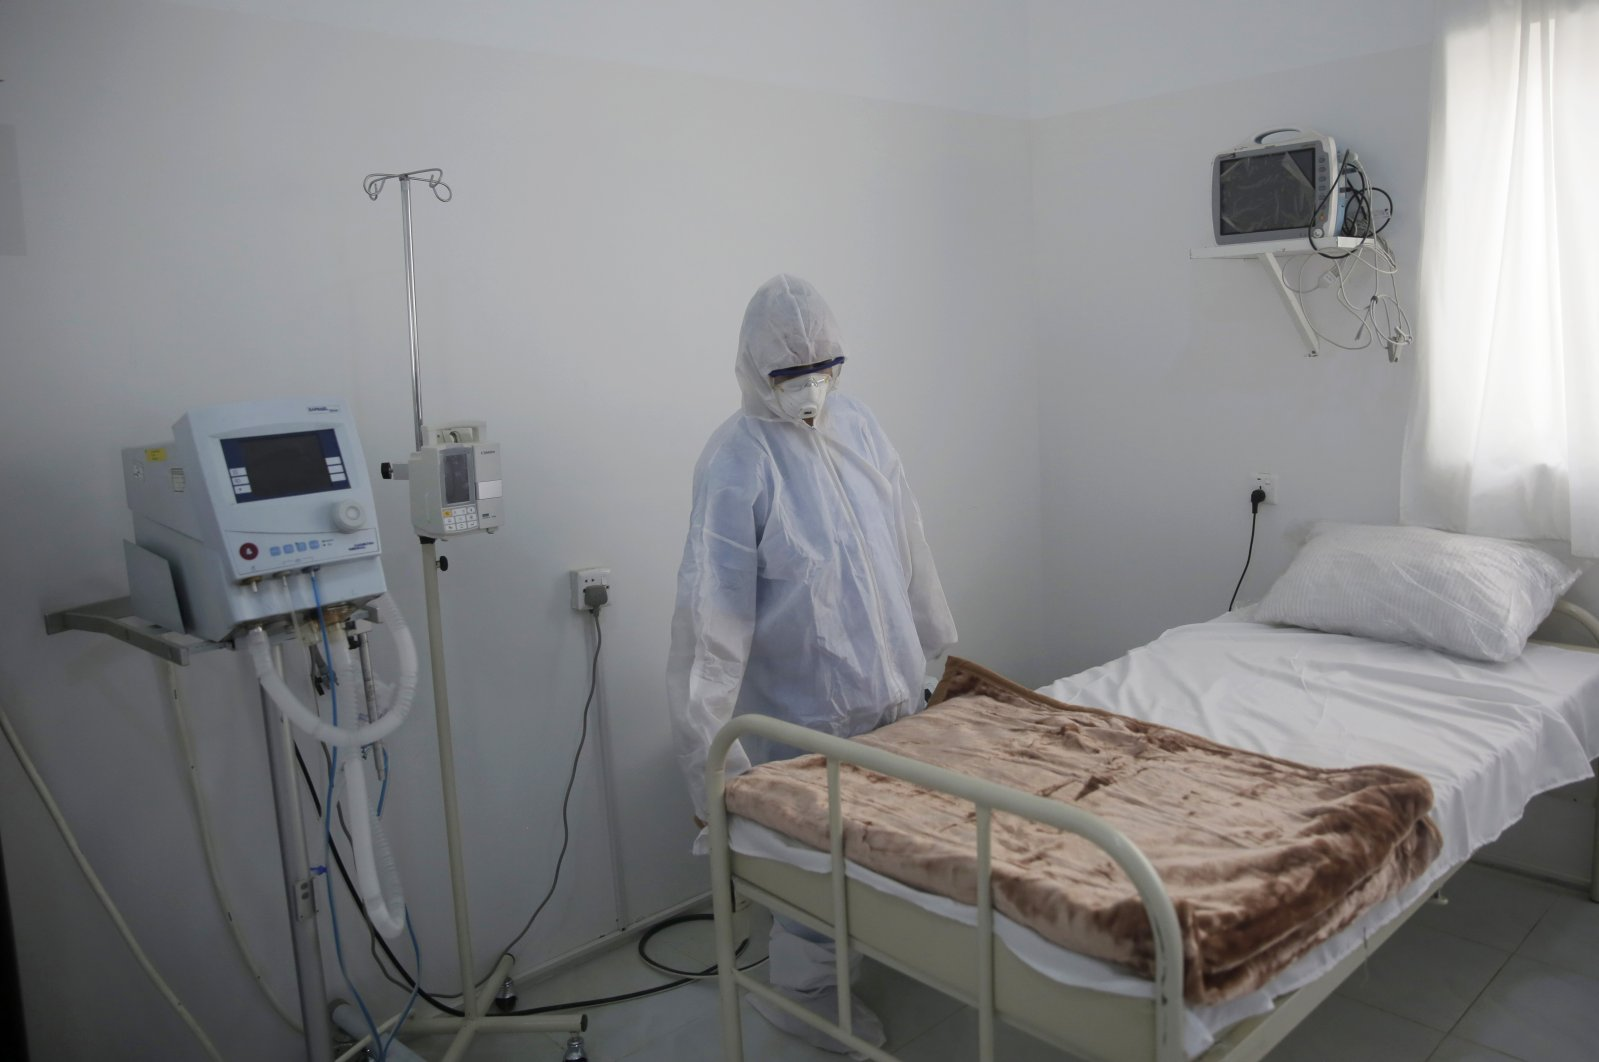 A medical staff member works on setting up an isolation room at a coronavirus quarantine ward at a hospital in Sanaa, Yemen, March 15, 2020. (AP Photo)